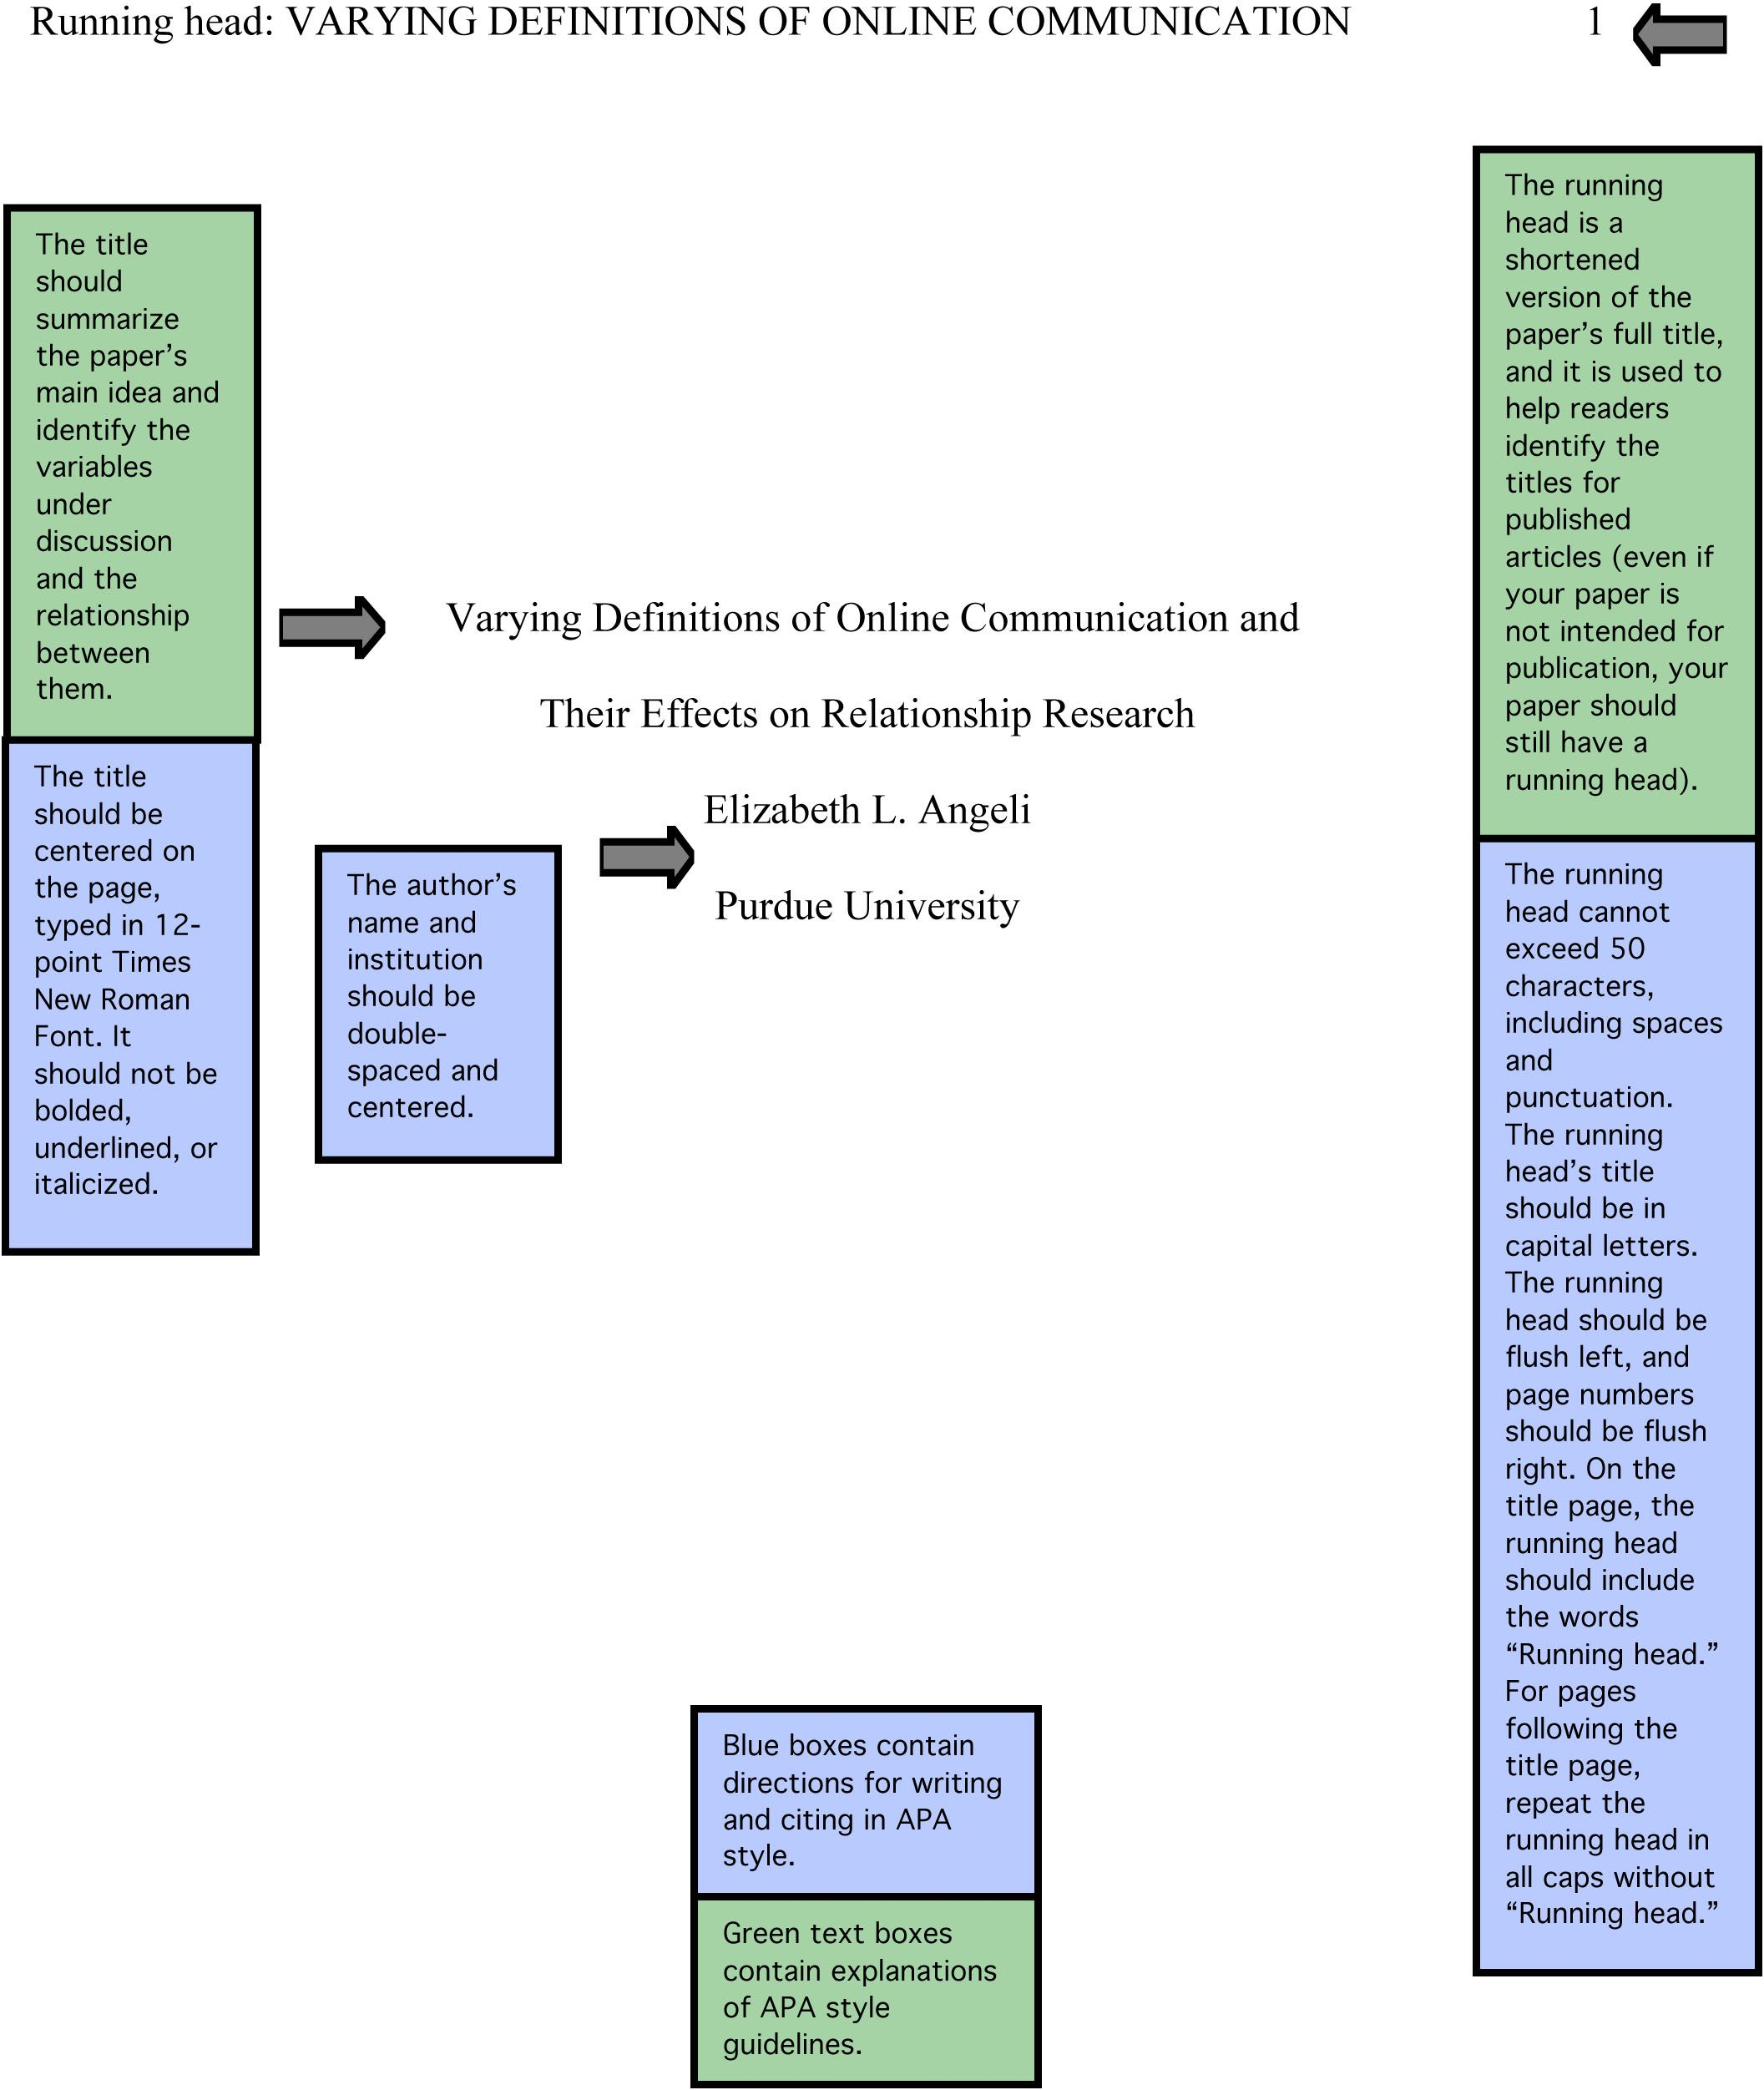 foundations of social science how to type a report format